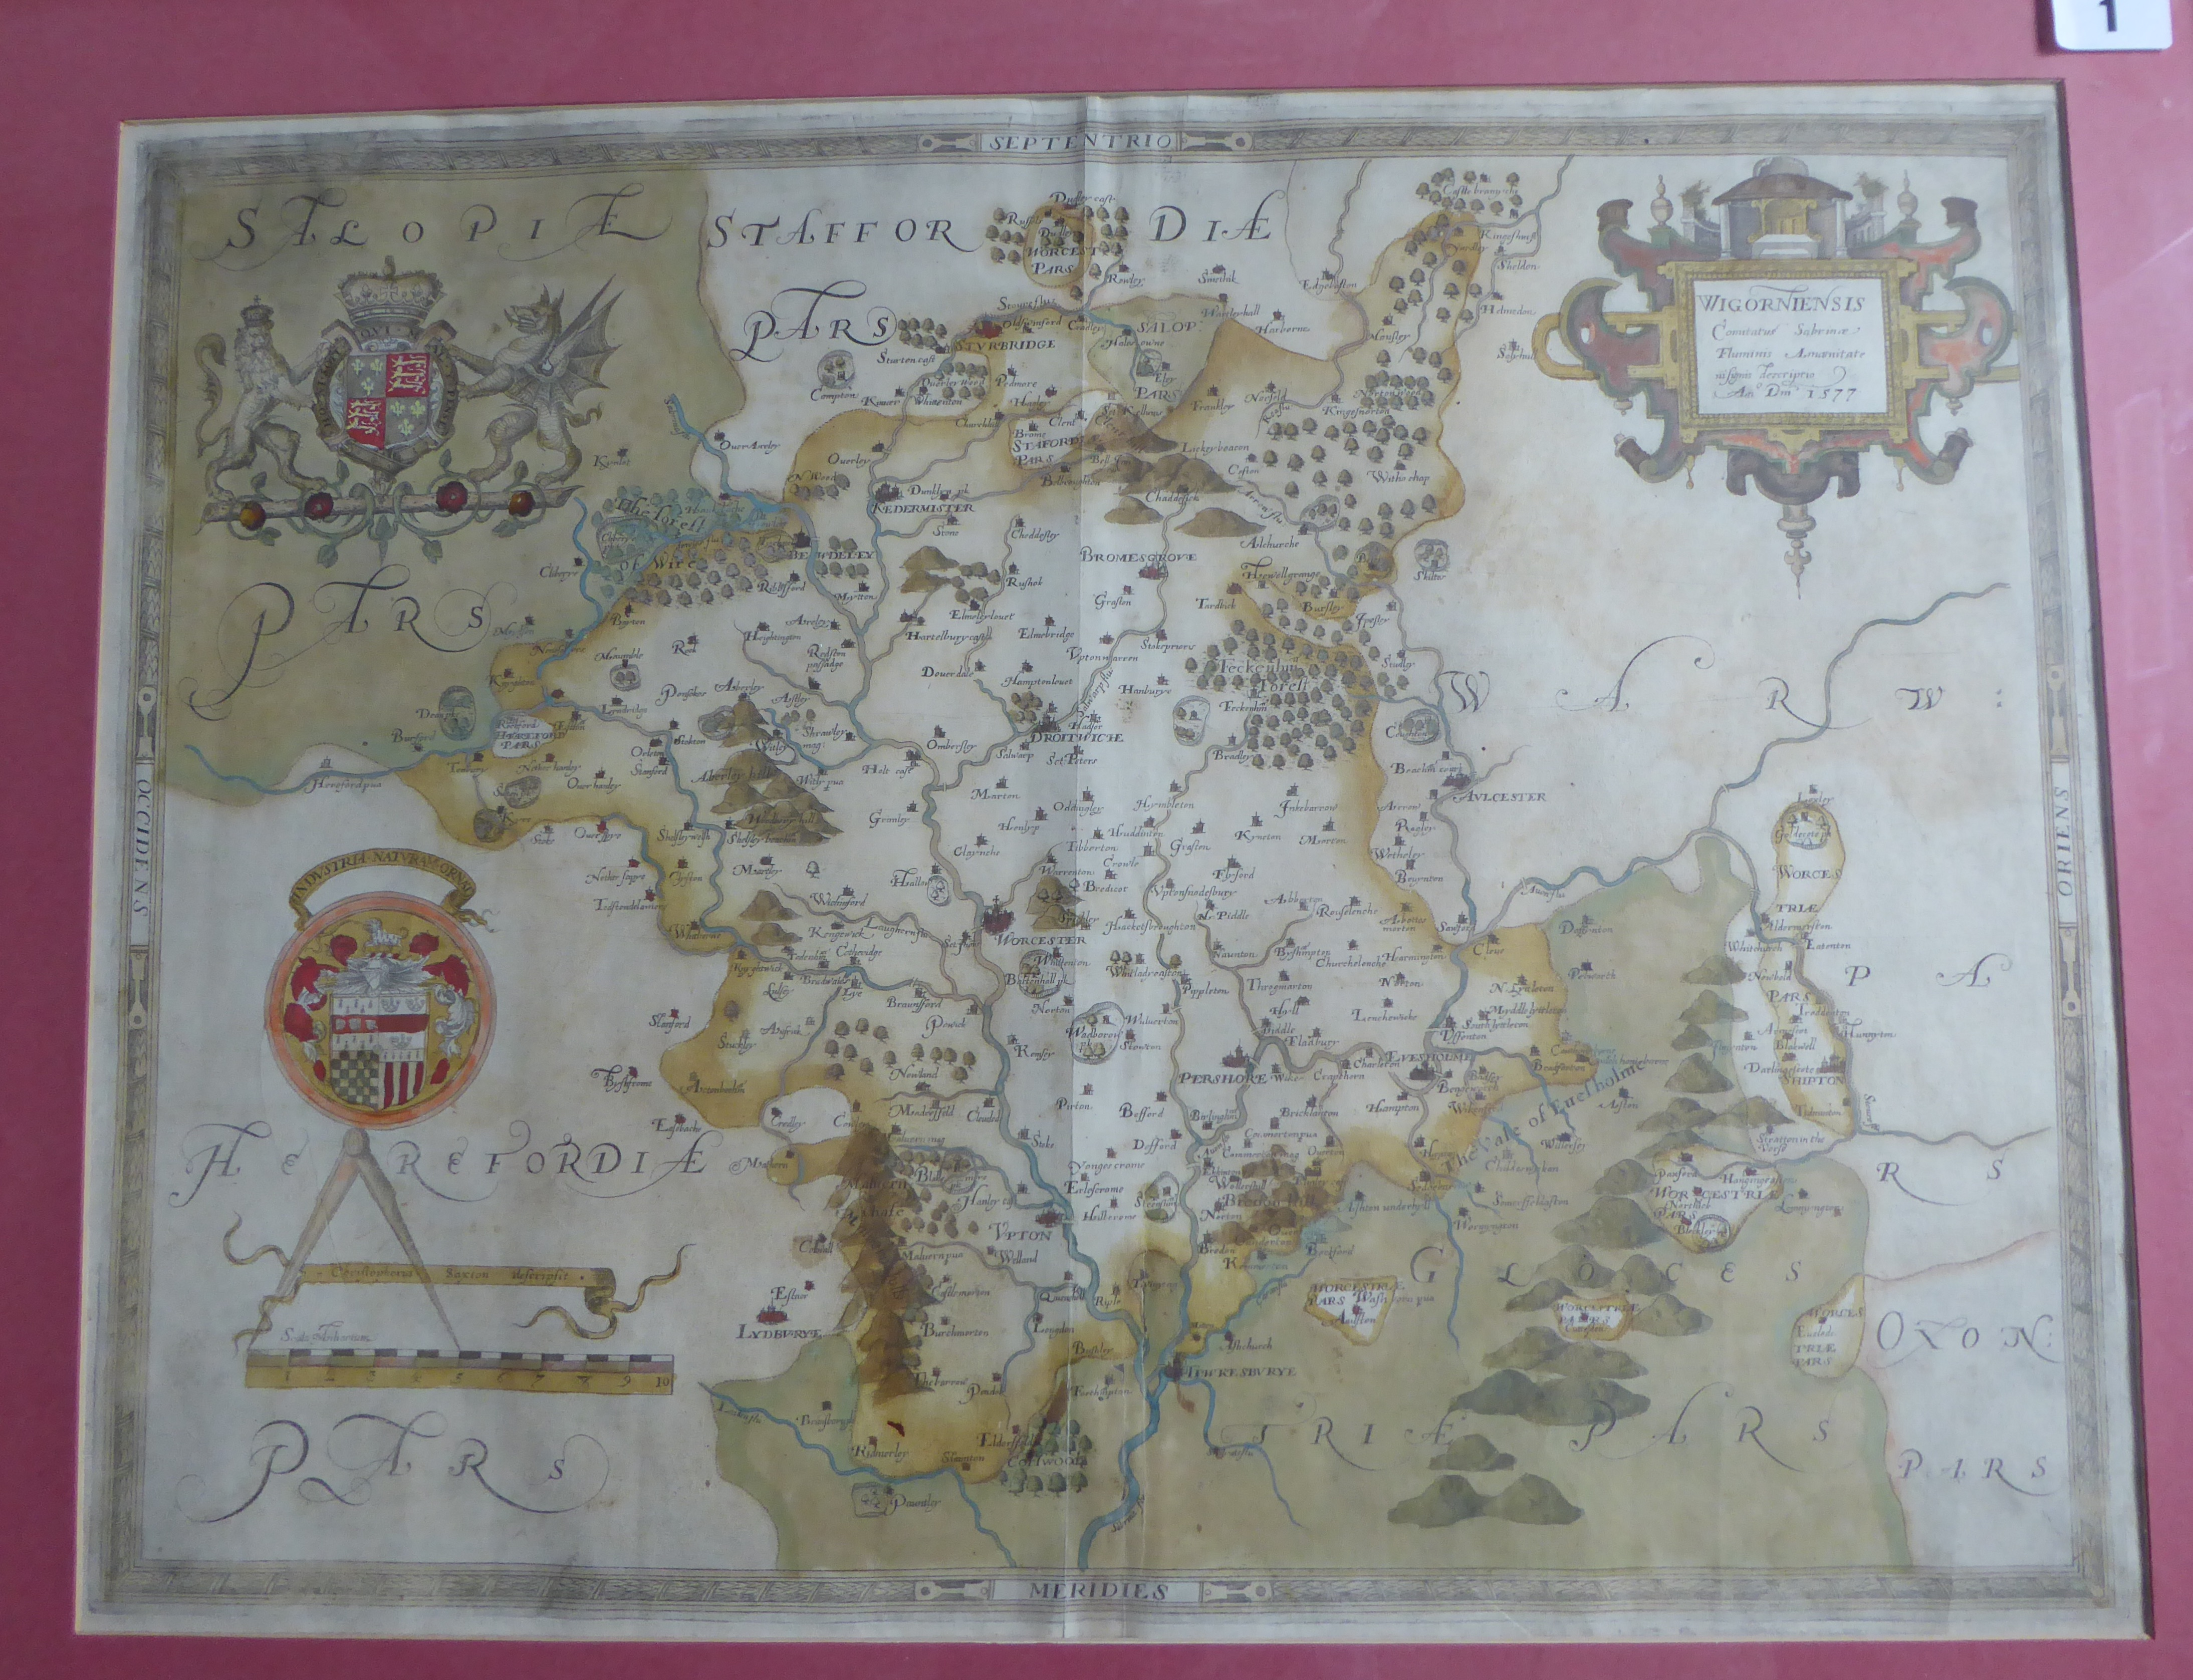 Lot 1 - A C16th hand coloured copper engraved map of Worcestershire C1579 by Christopher Saxton